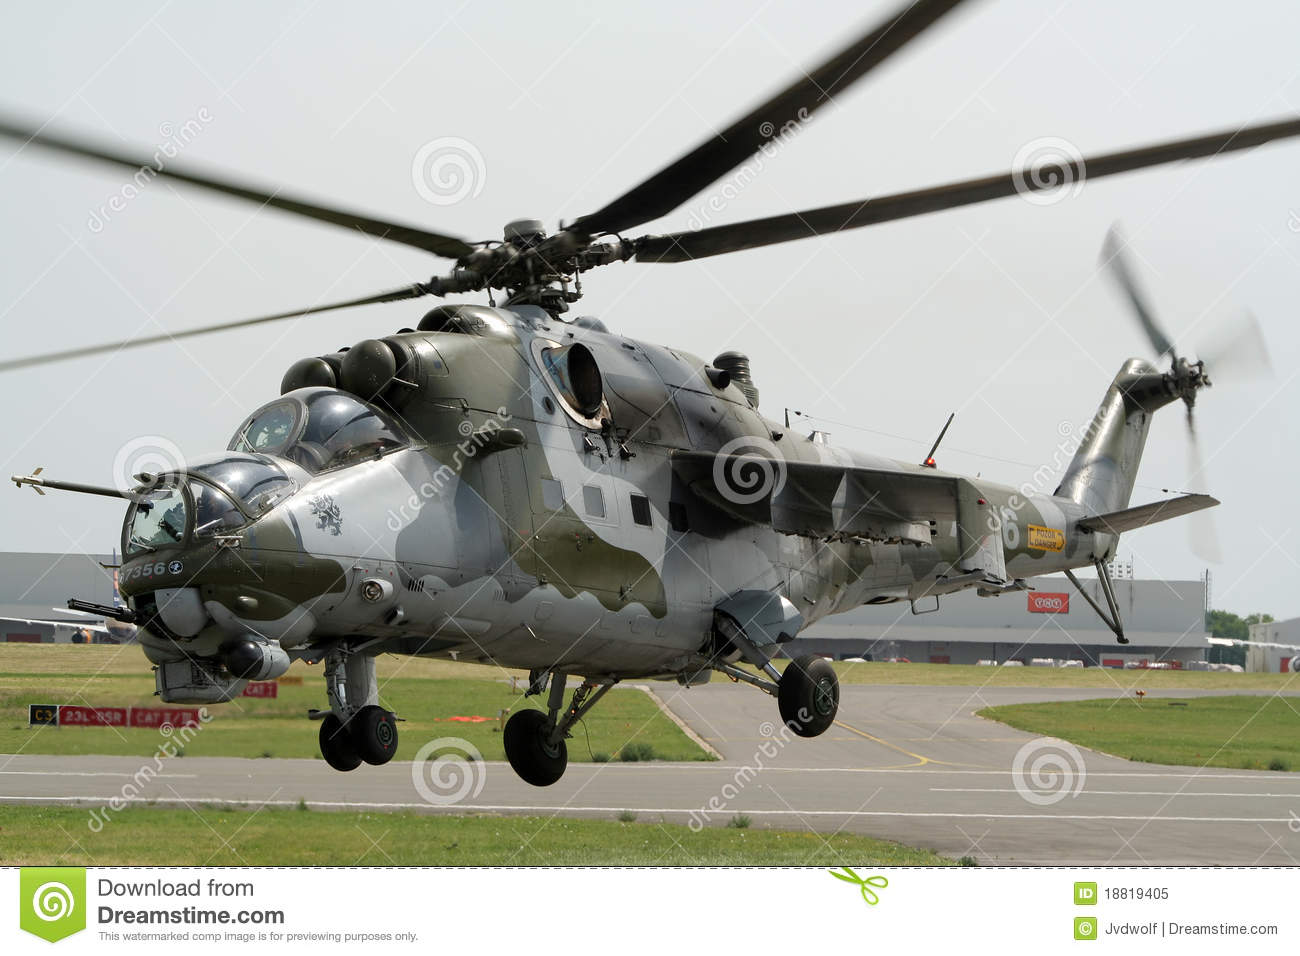 russian heli with Royalty Free Stock Photo Mi 24 Hind Attack Helicopter Image18819405 on China Russia Team Up To Build Worlds Largest Most Po 1661471905 moreover Assortment Of Vehicles also File Mil Mi 171A2 at the MAKS 2013  01 likewise 10 Facts About Indian Air Force besides 9726915.